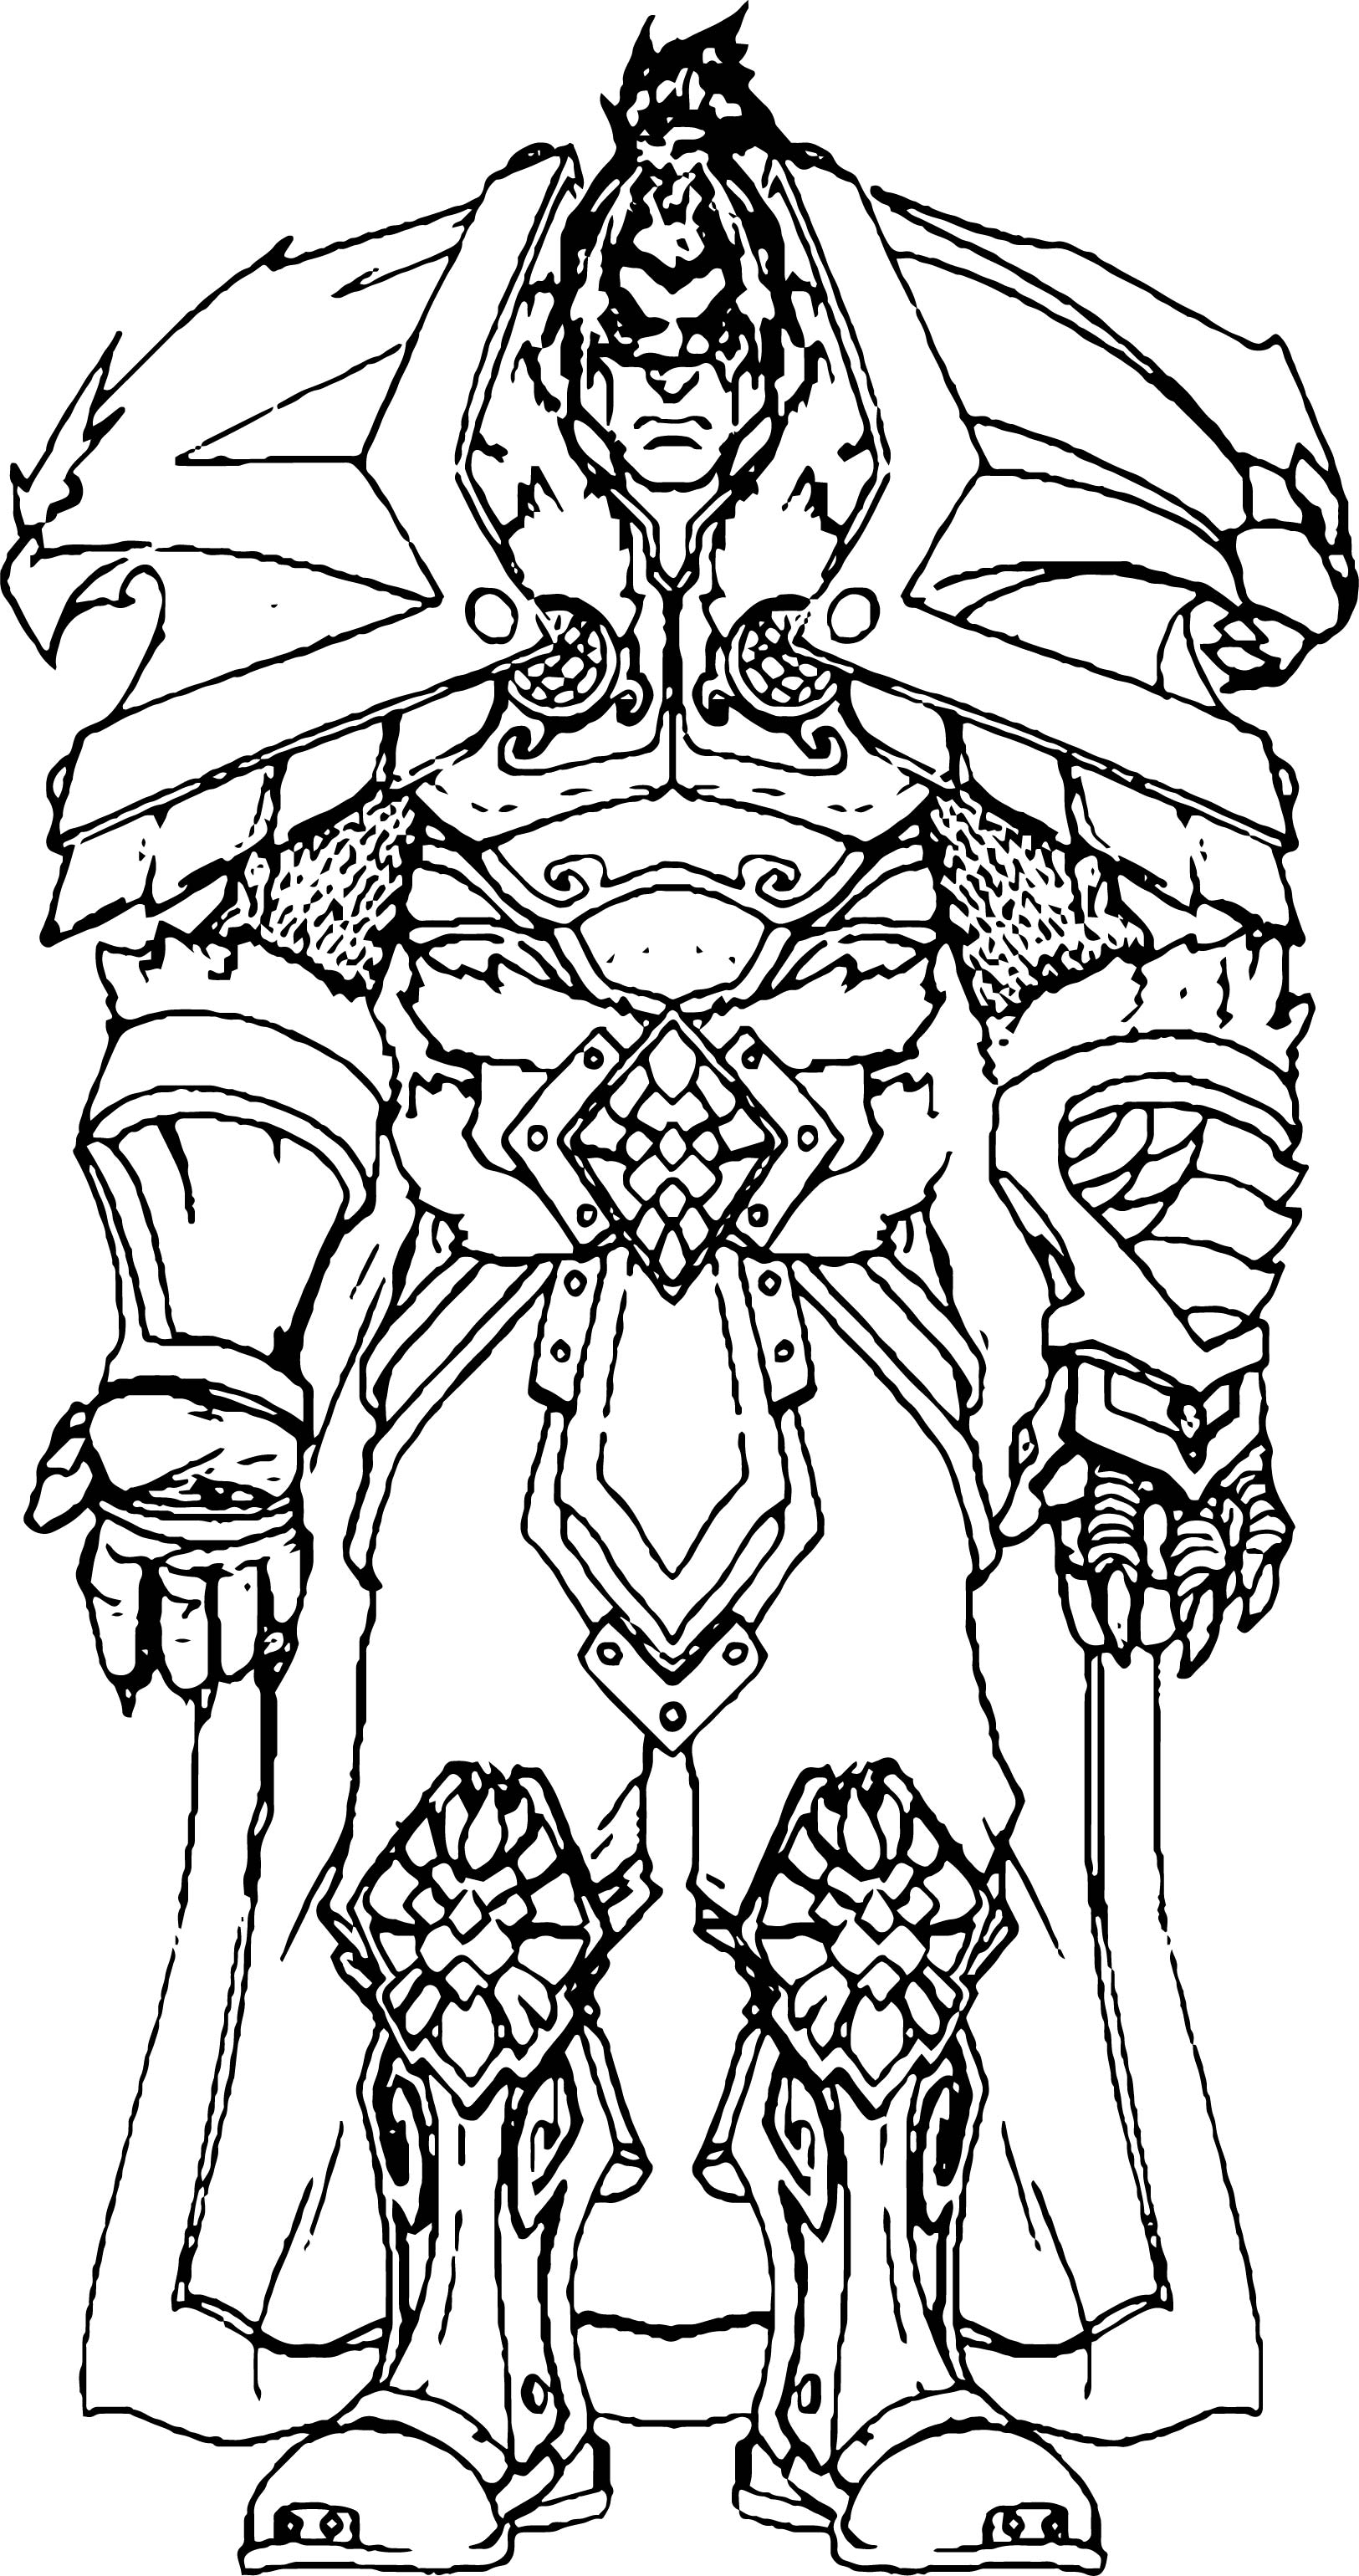 Big Warrior Characters Coloring Page